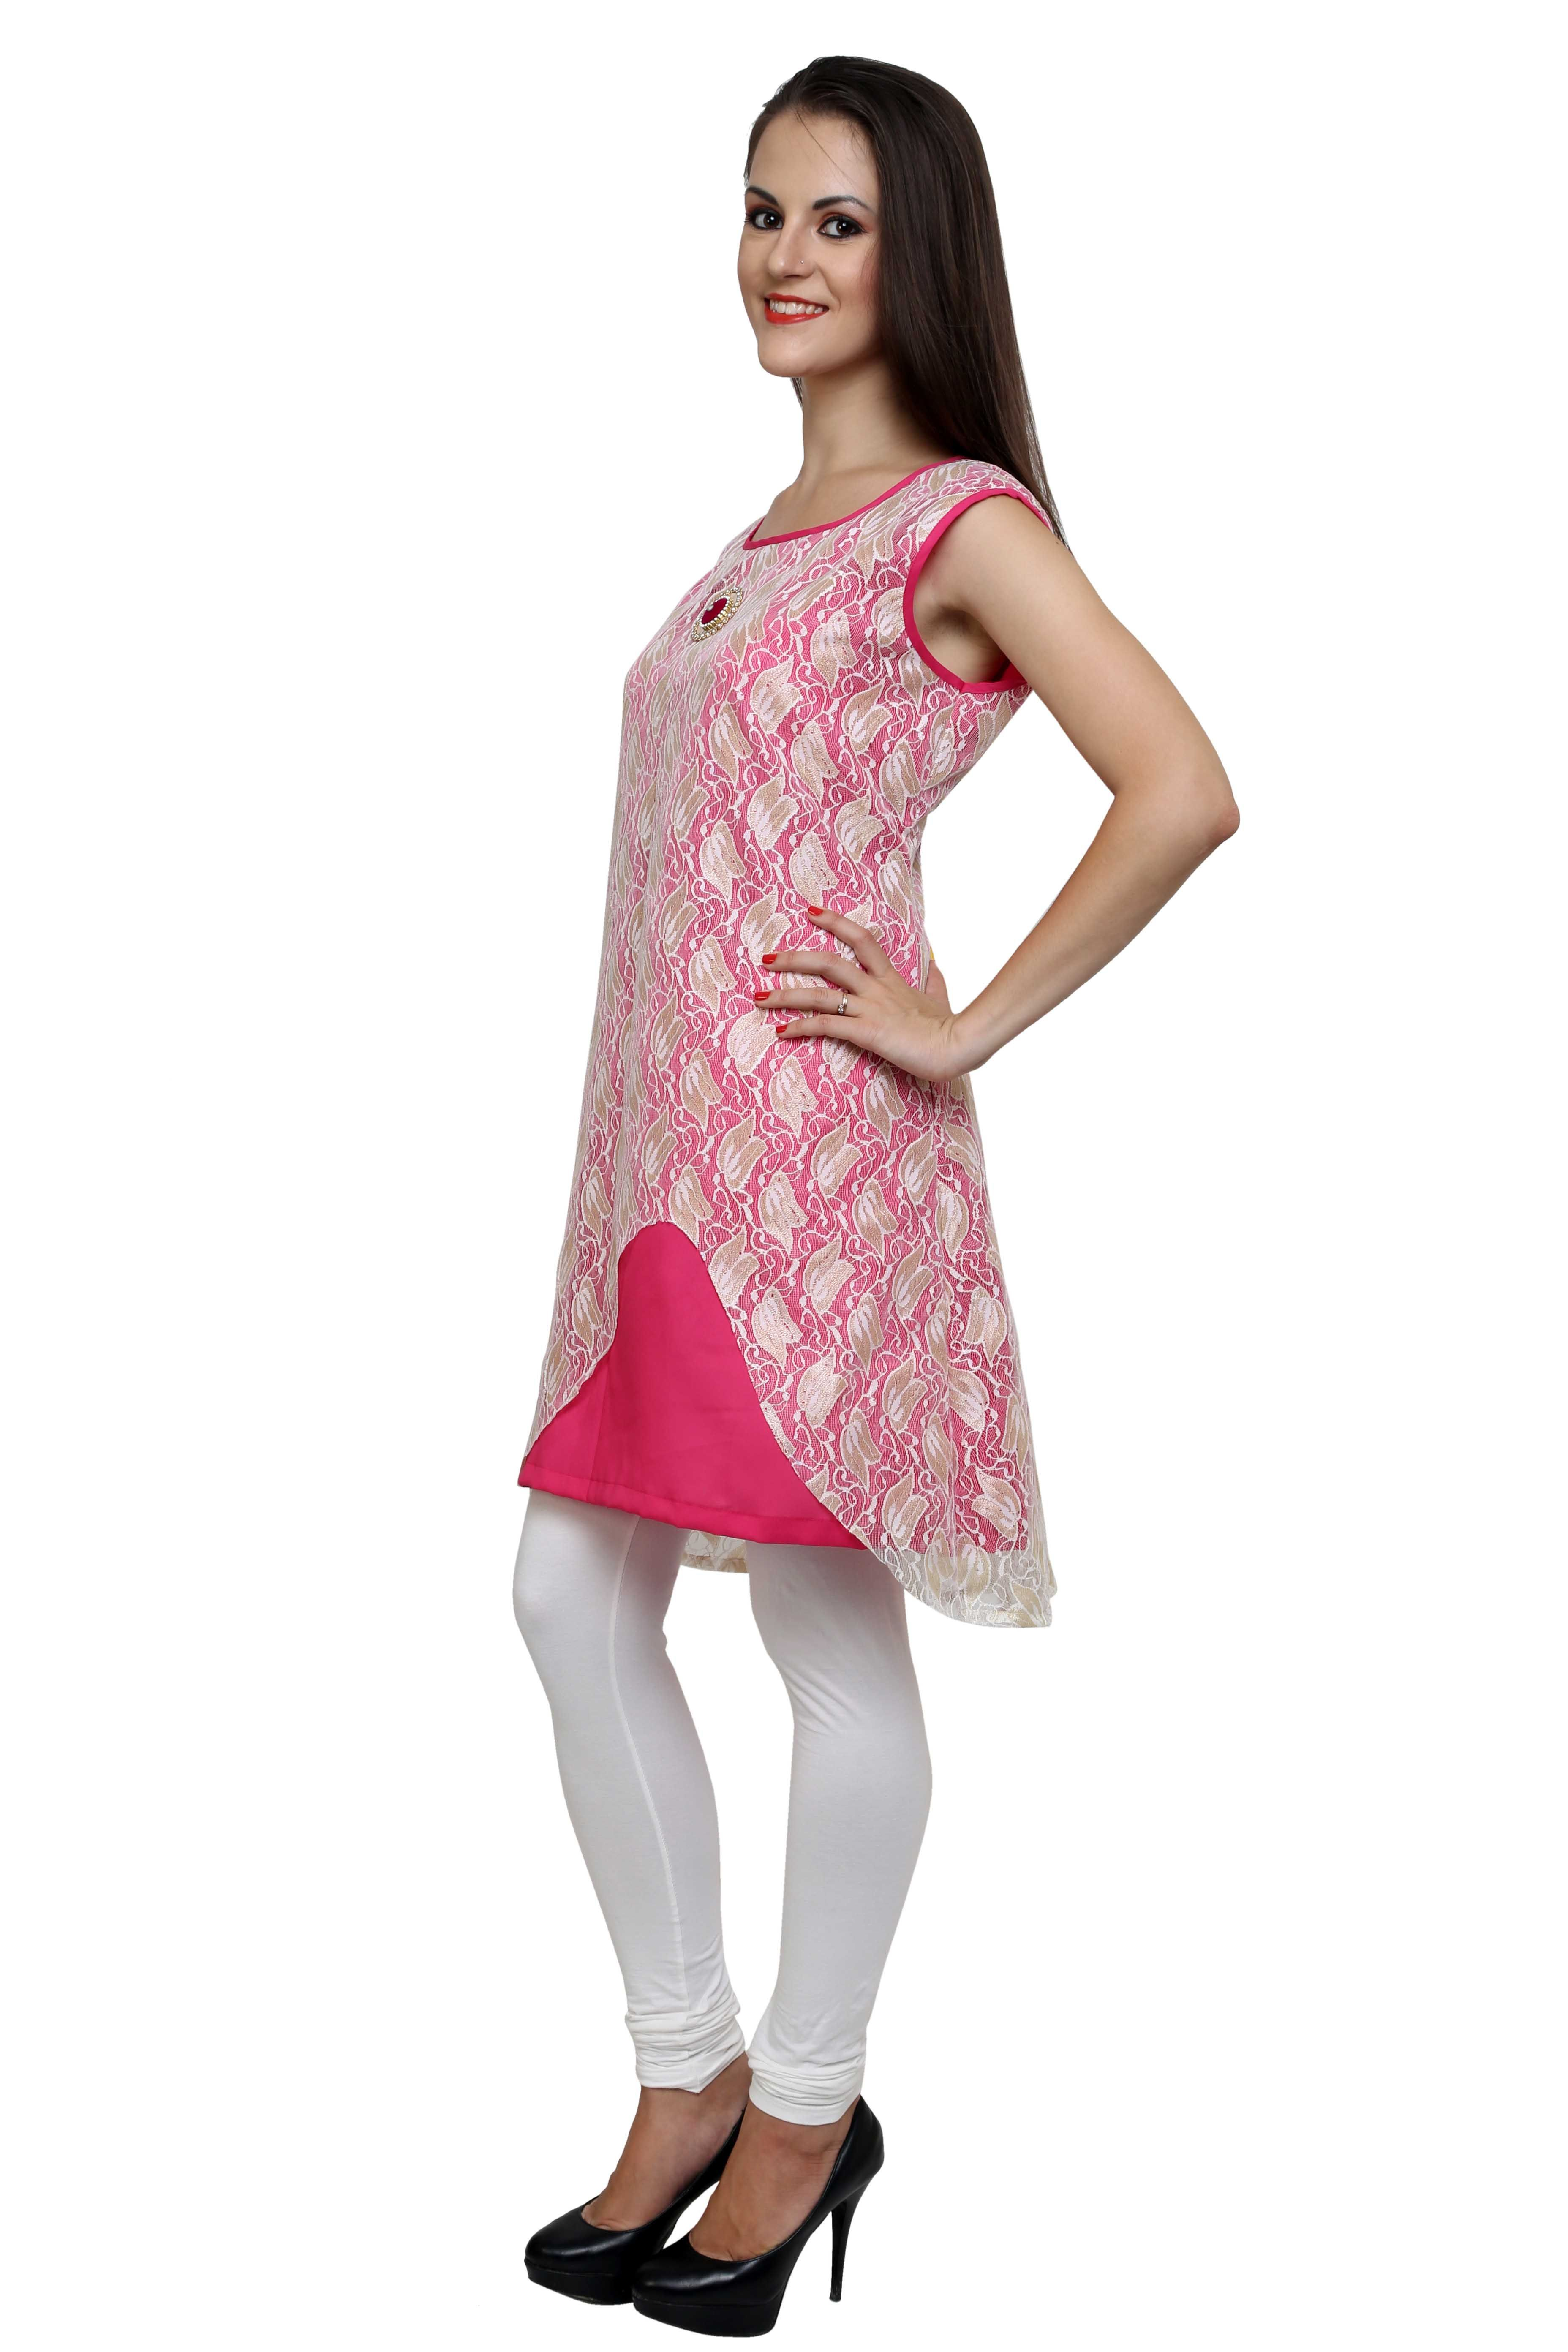 Chantilly lace kurti in hot pink!